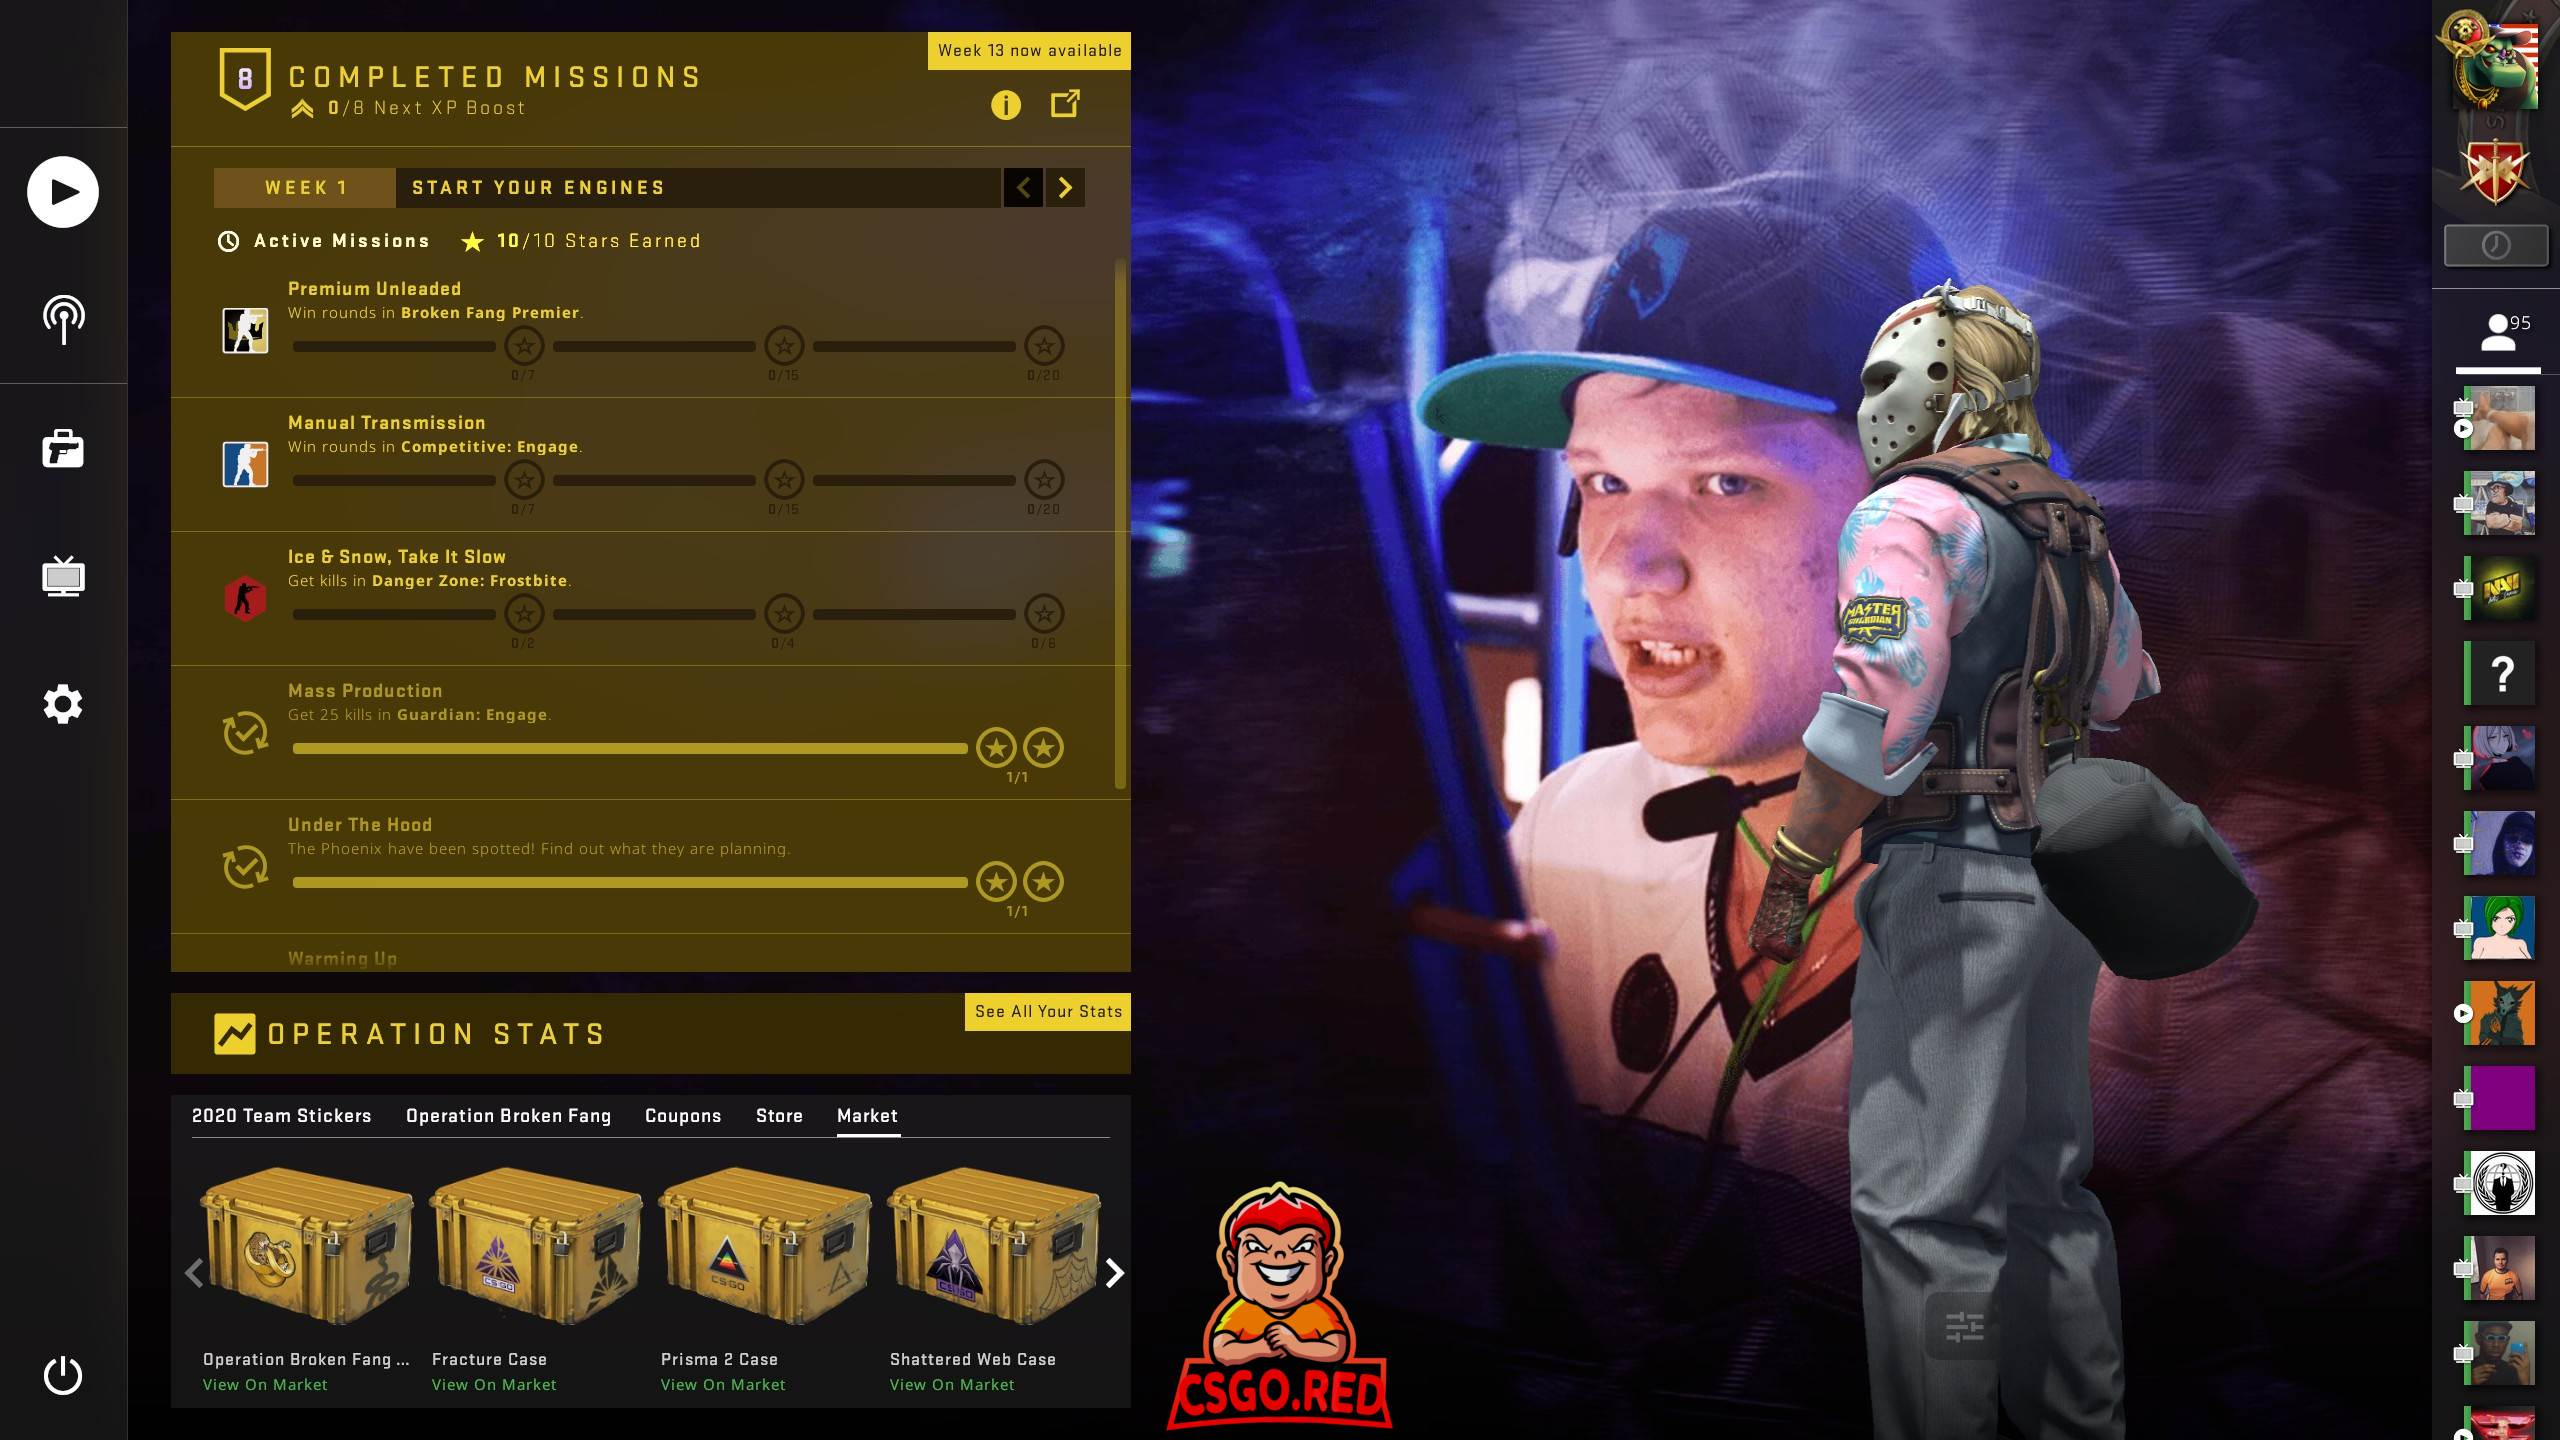 s1mple panorama UI background Preview